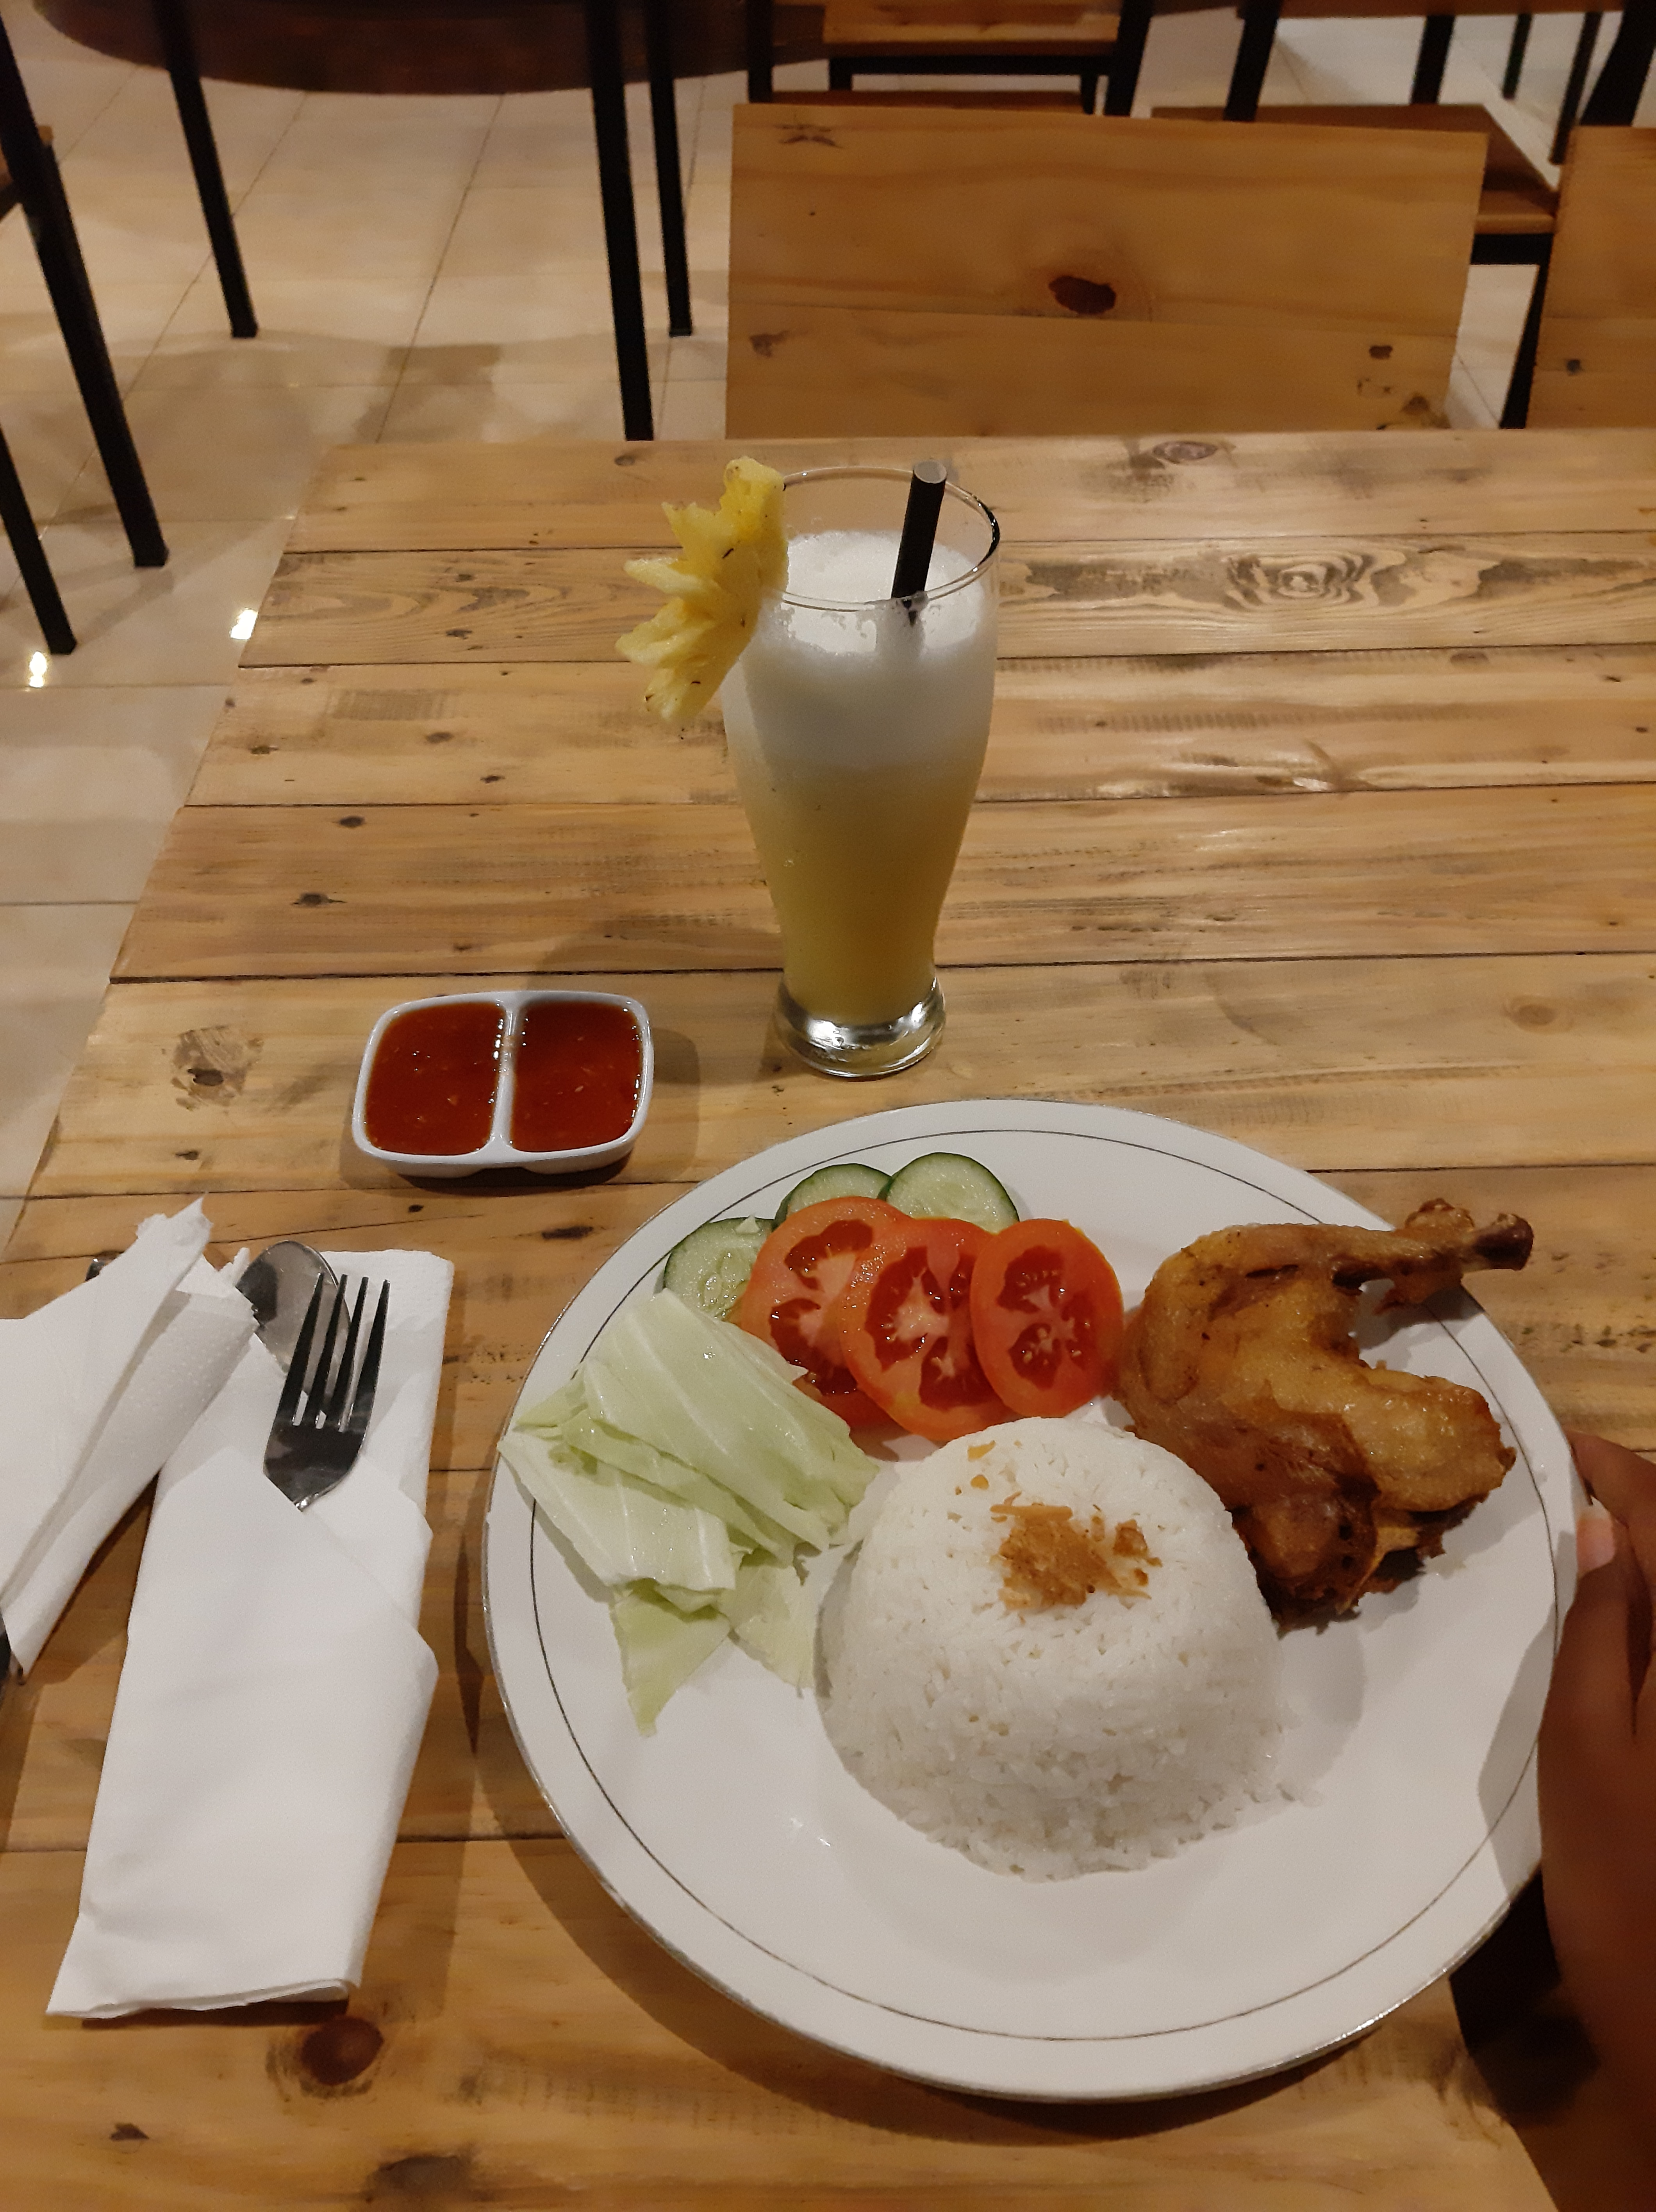 fried chicken meal with rice and tomato and pineapple juice